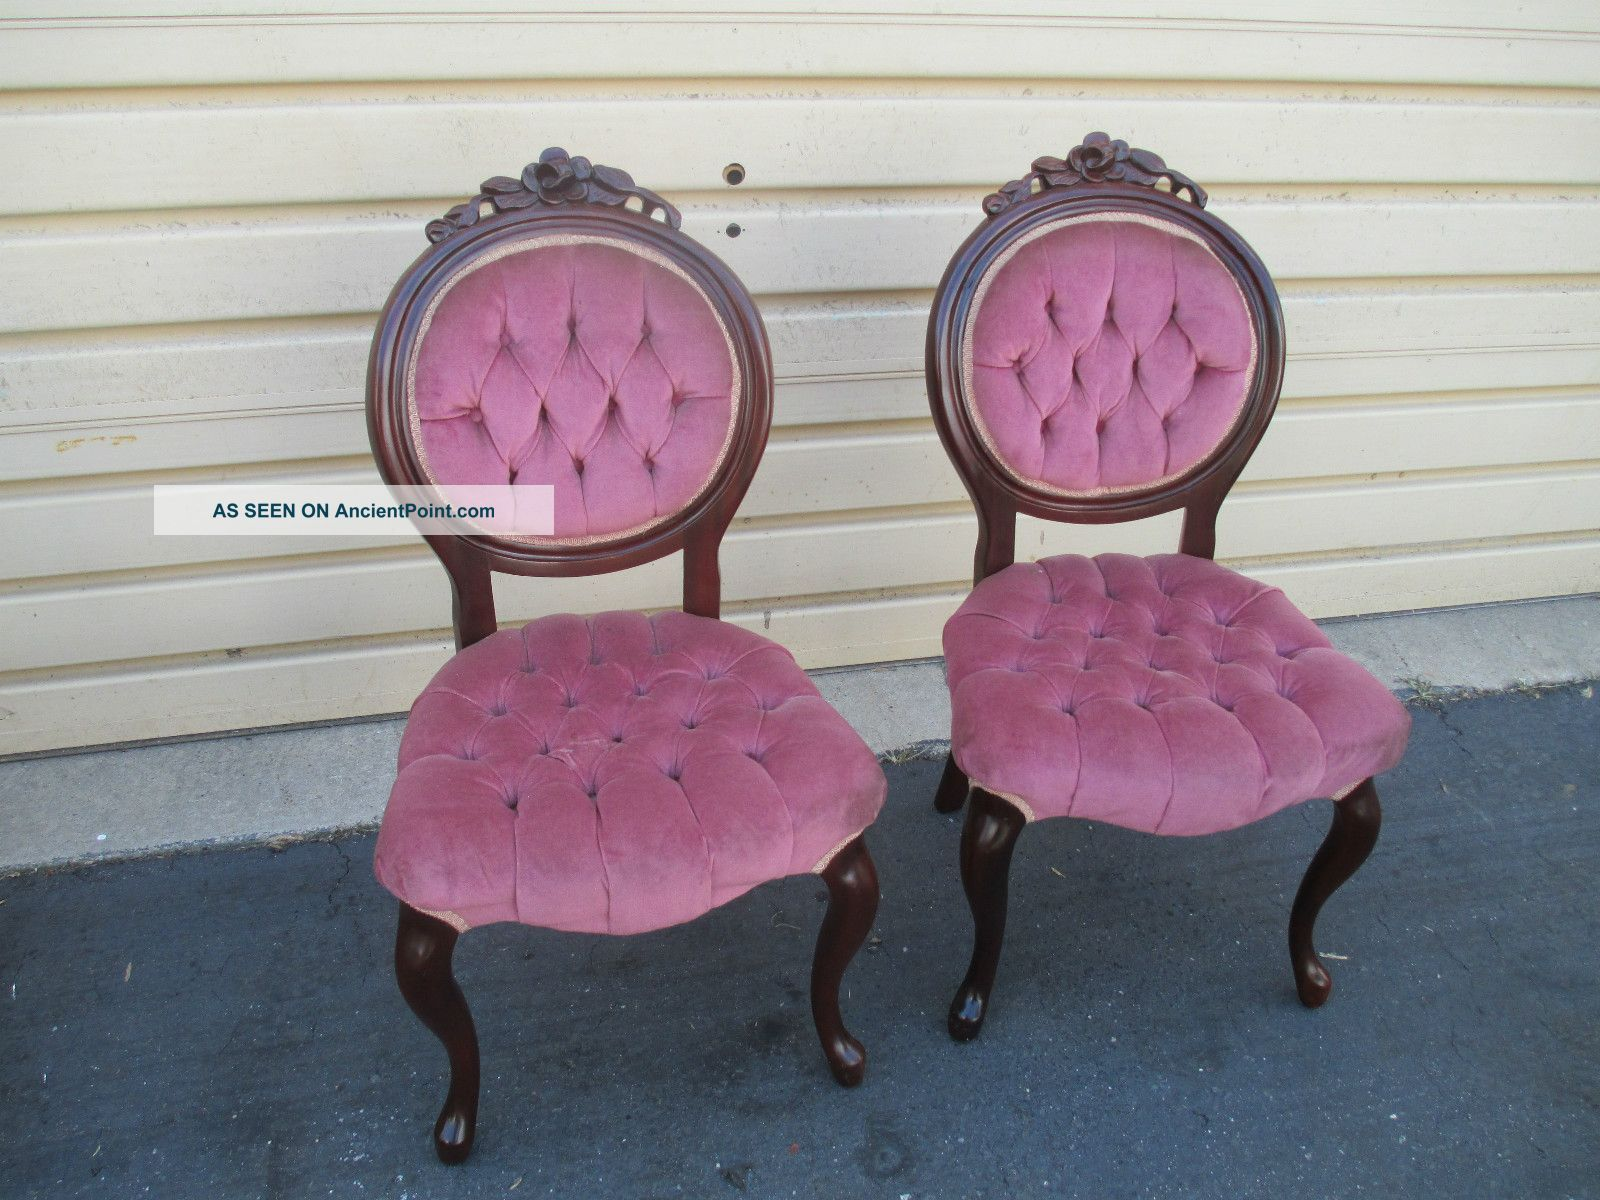 Victorian style furniture chair - 52203 Pair Victorian Style Kimball Rose Carved Tufted Boudoir Chairs Post 1950 Photo